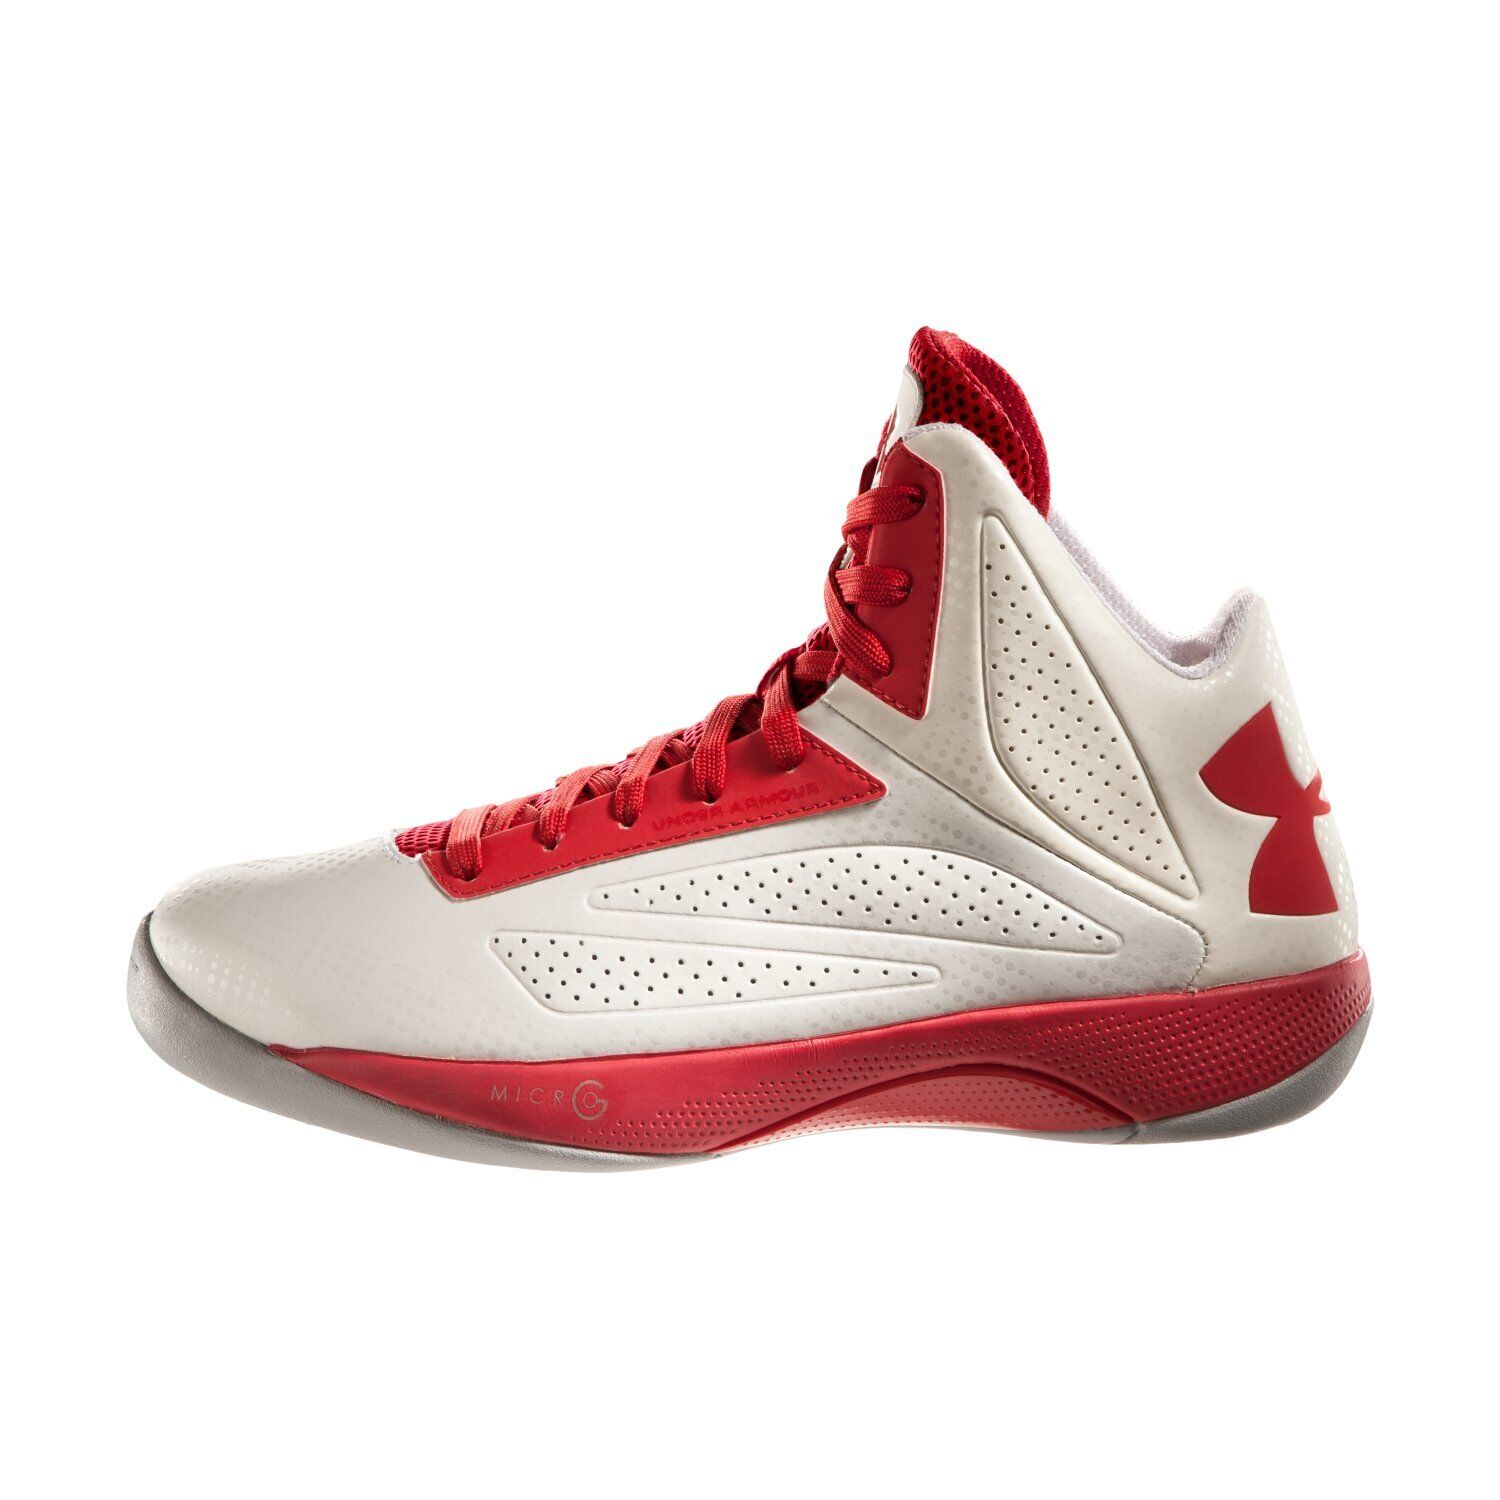 Under Armour Basketball Shoes Micro G Torch Under Armour Me...